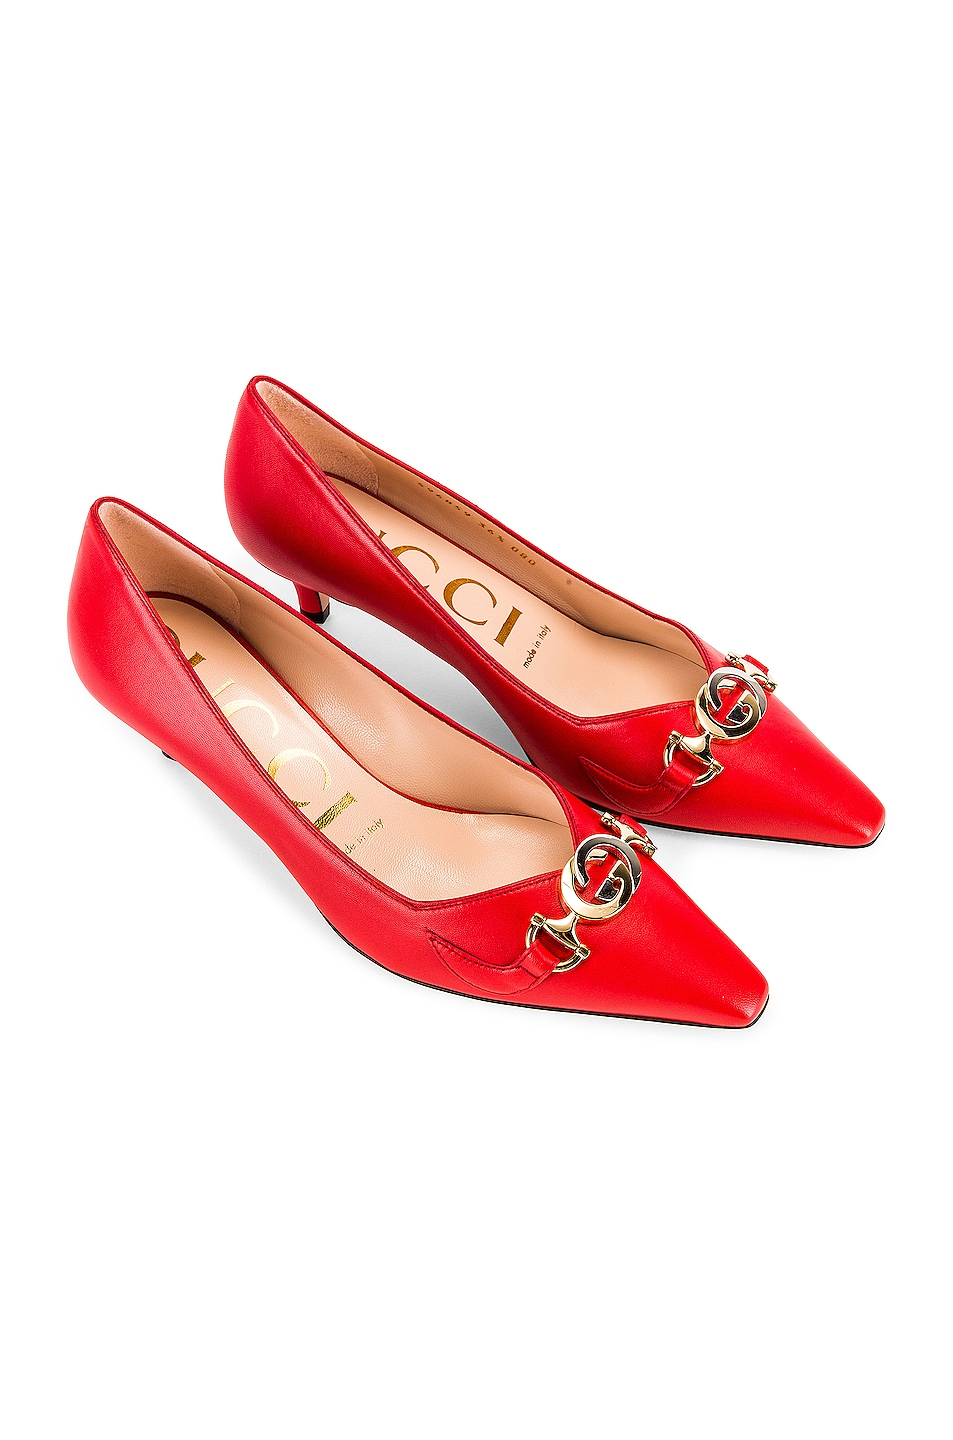 Image 1 of Gucci Low Heel Pumps in Heron Red